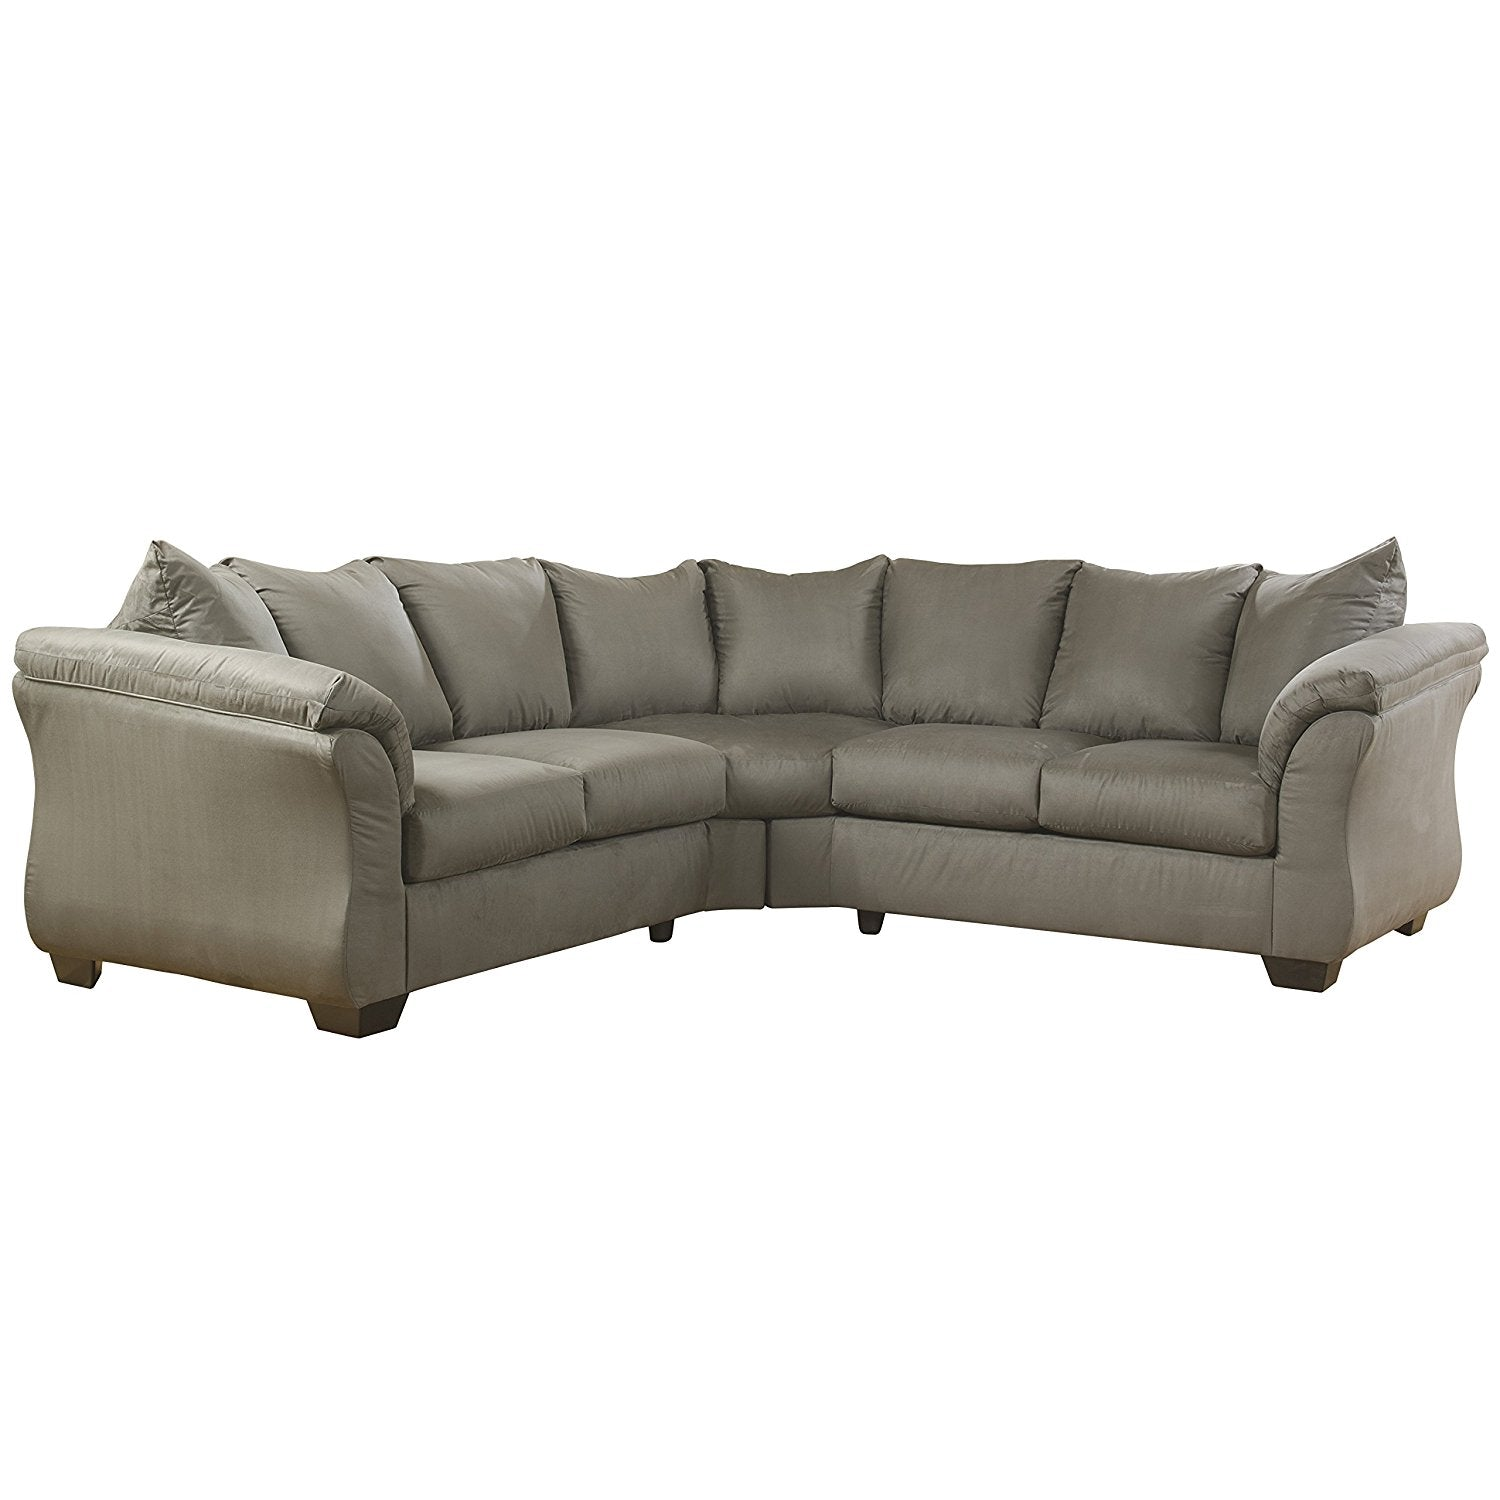 Design Ashley Darcy Sectional Cobblestone Fabric Signature 934 Product Photo